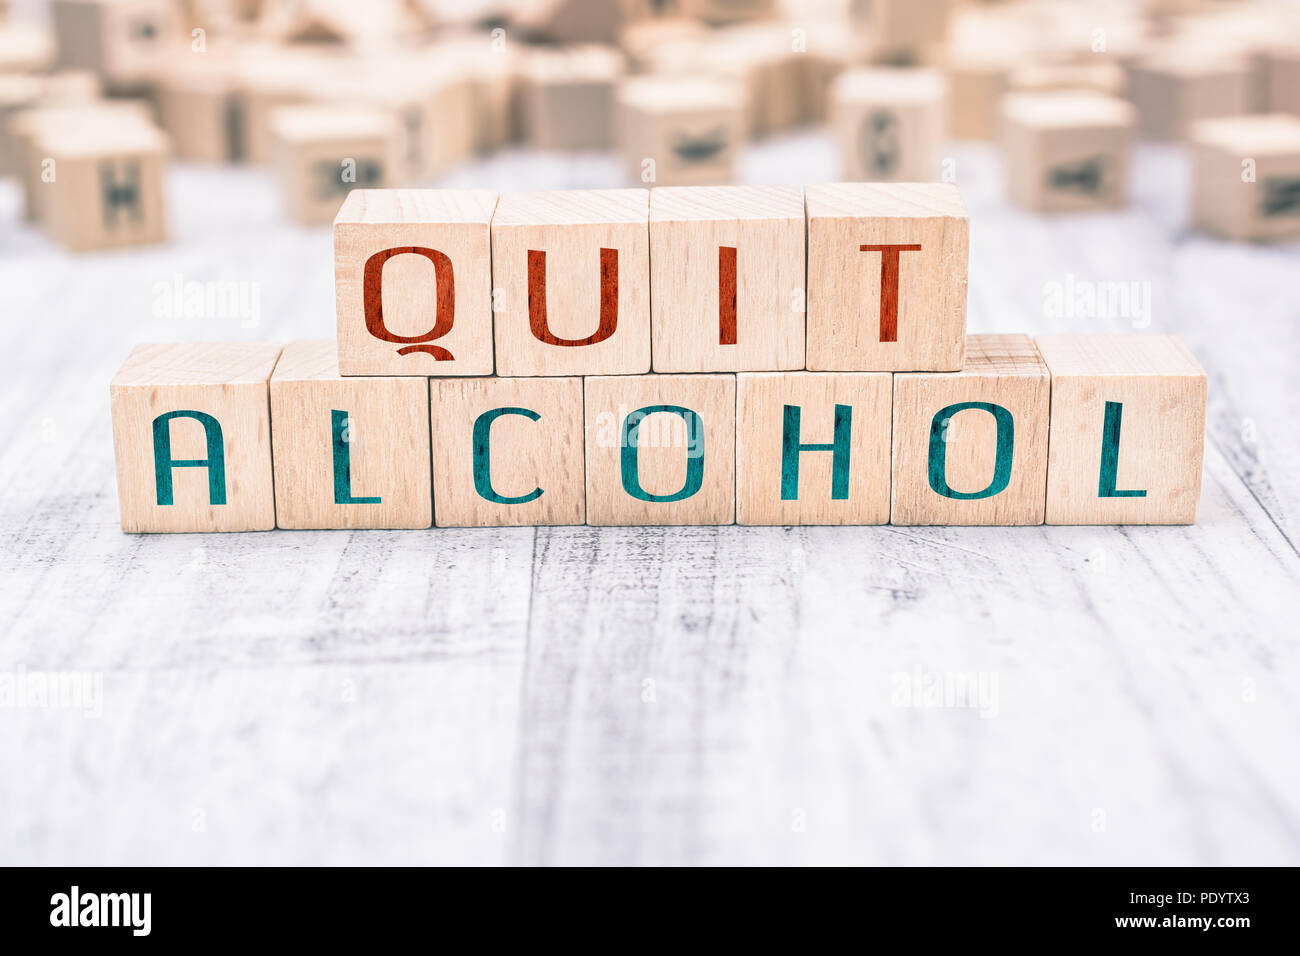 The Words Quit Alcohol Formed By Wooden Blocks On A White Table, Reminder Concept - Stock Image